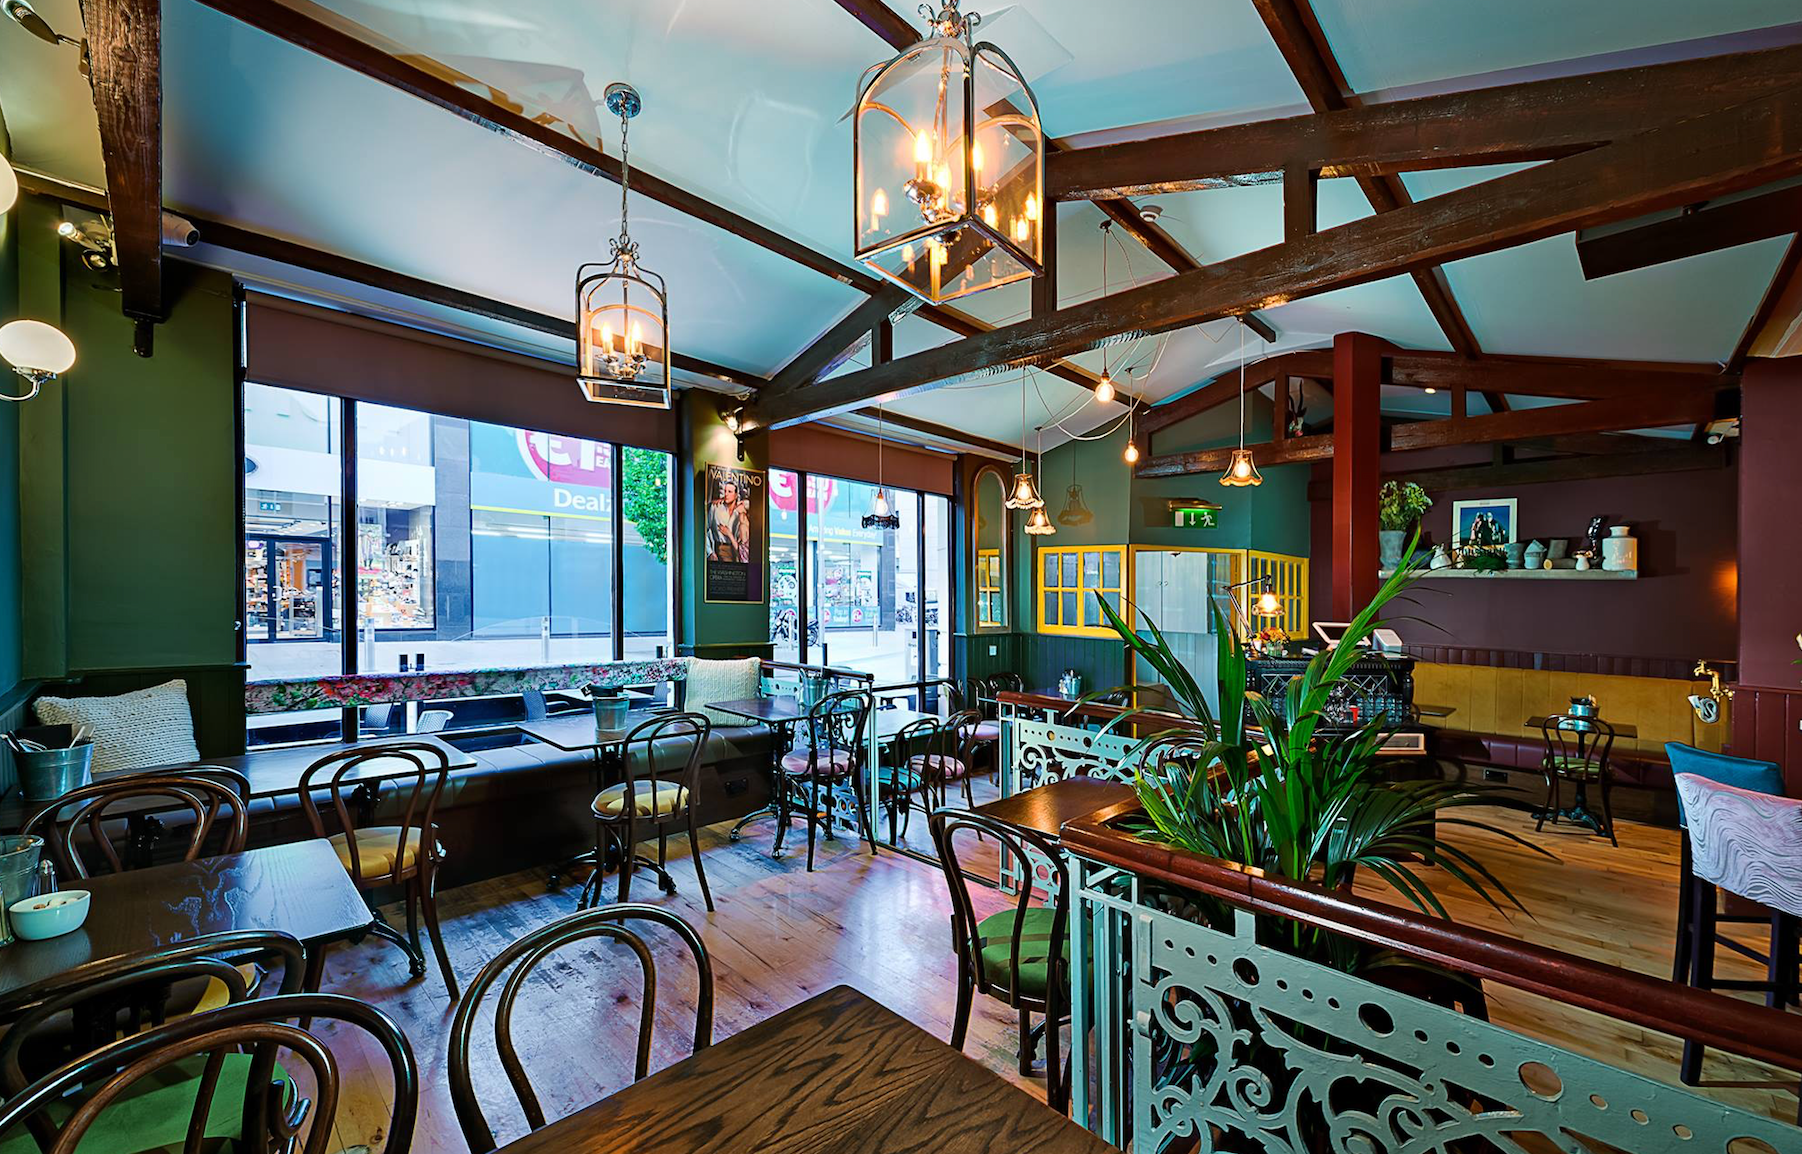 Green interior of restaurant with wood beam ceiling